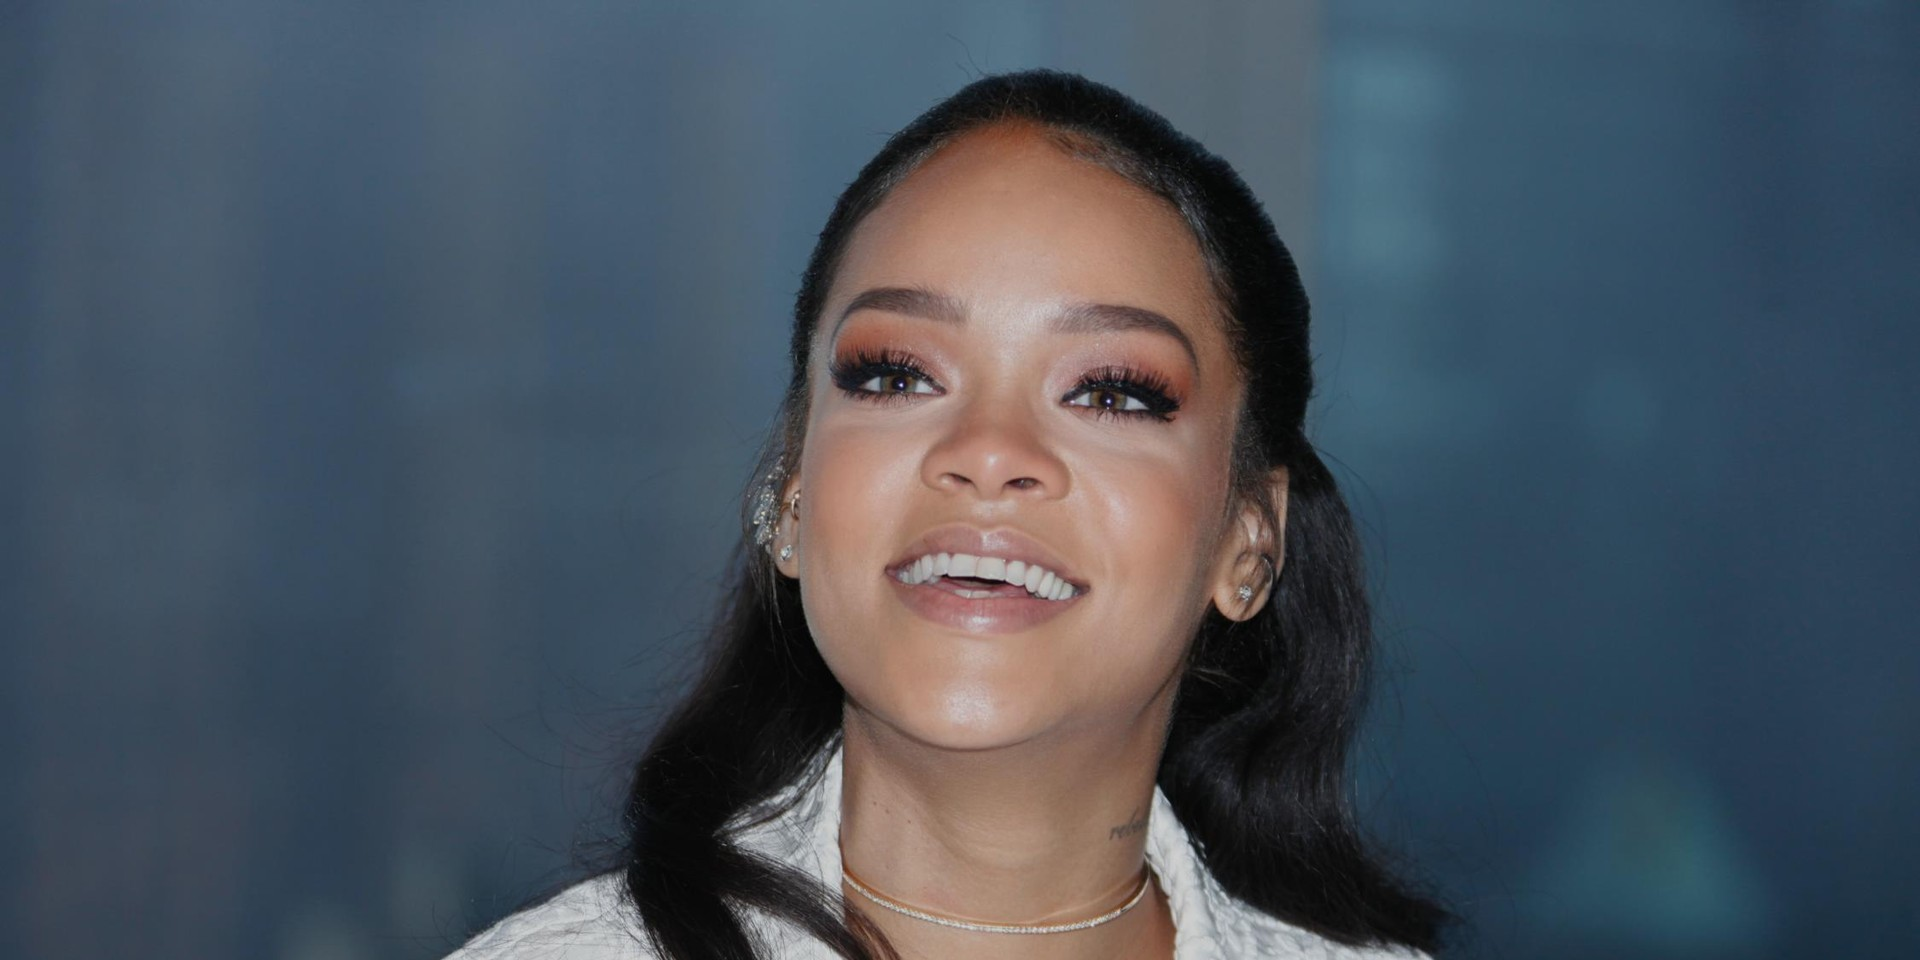 Rihanna will release a self-titled book that includes over 1000 photographs